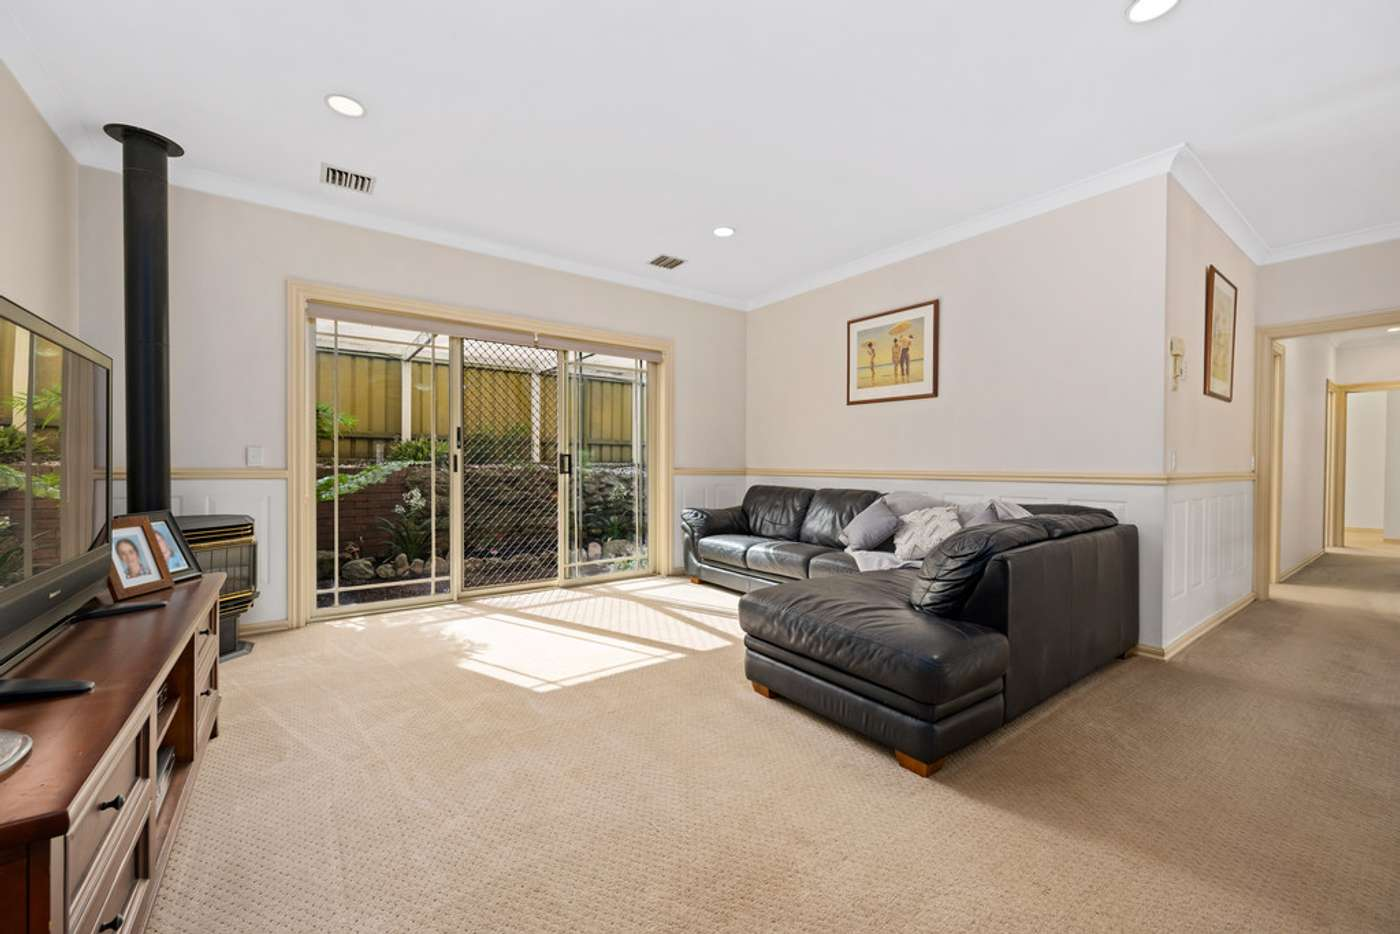 Sixth view of Homely house listing, 1 Dominic Drive, Wodonga VIC 3690